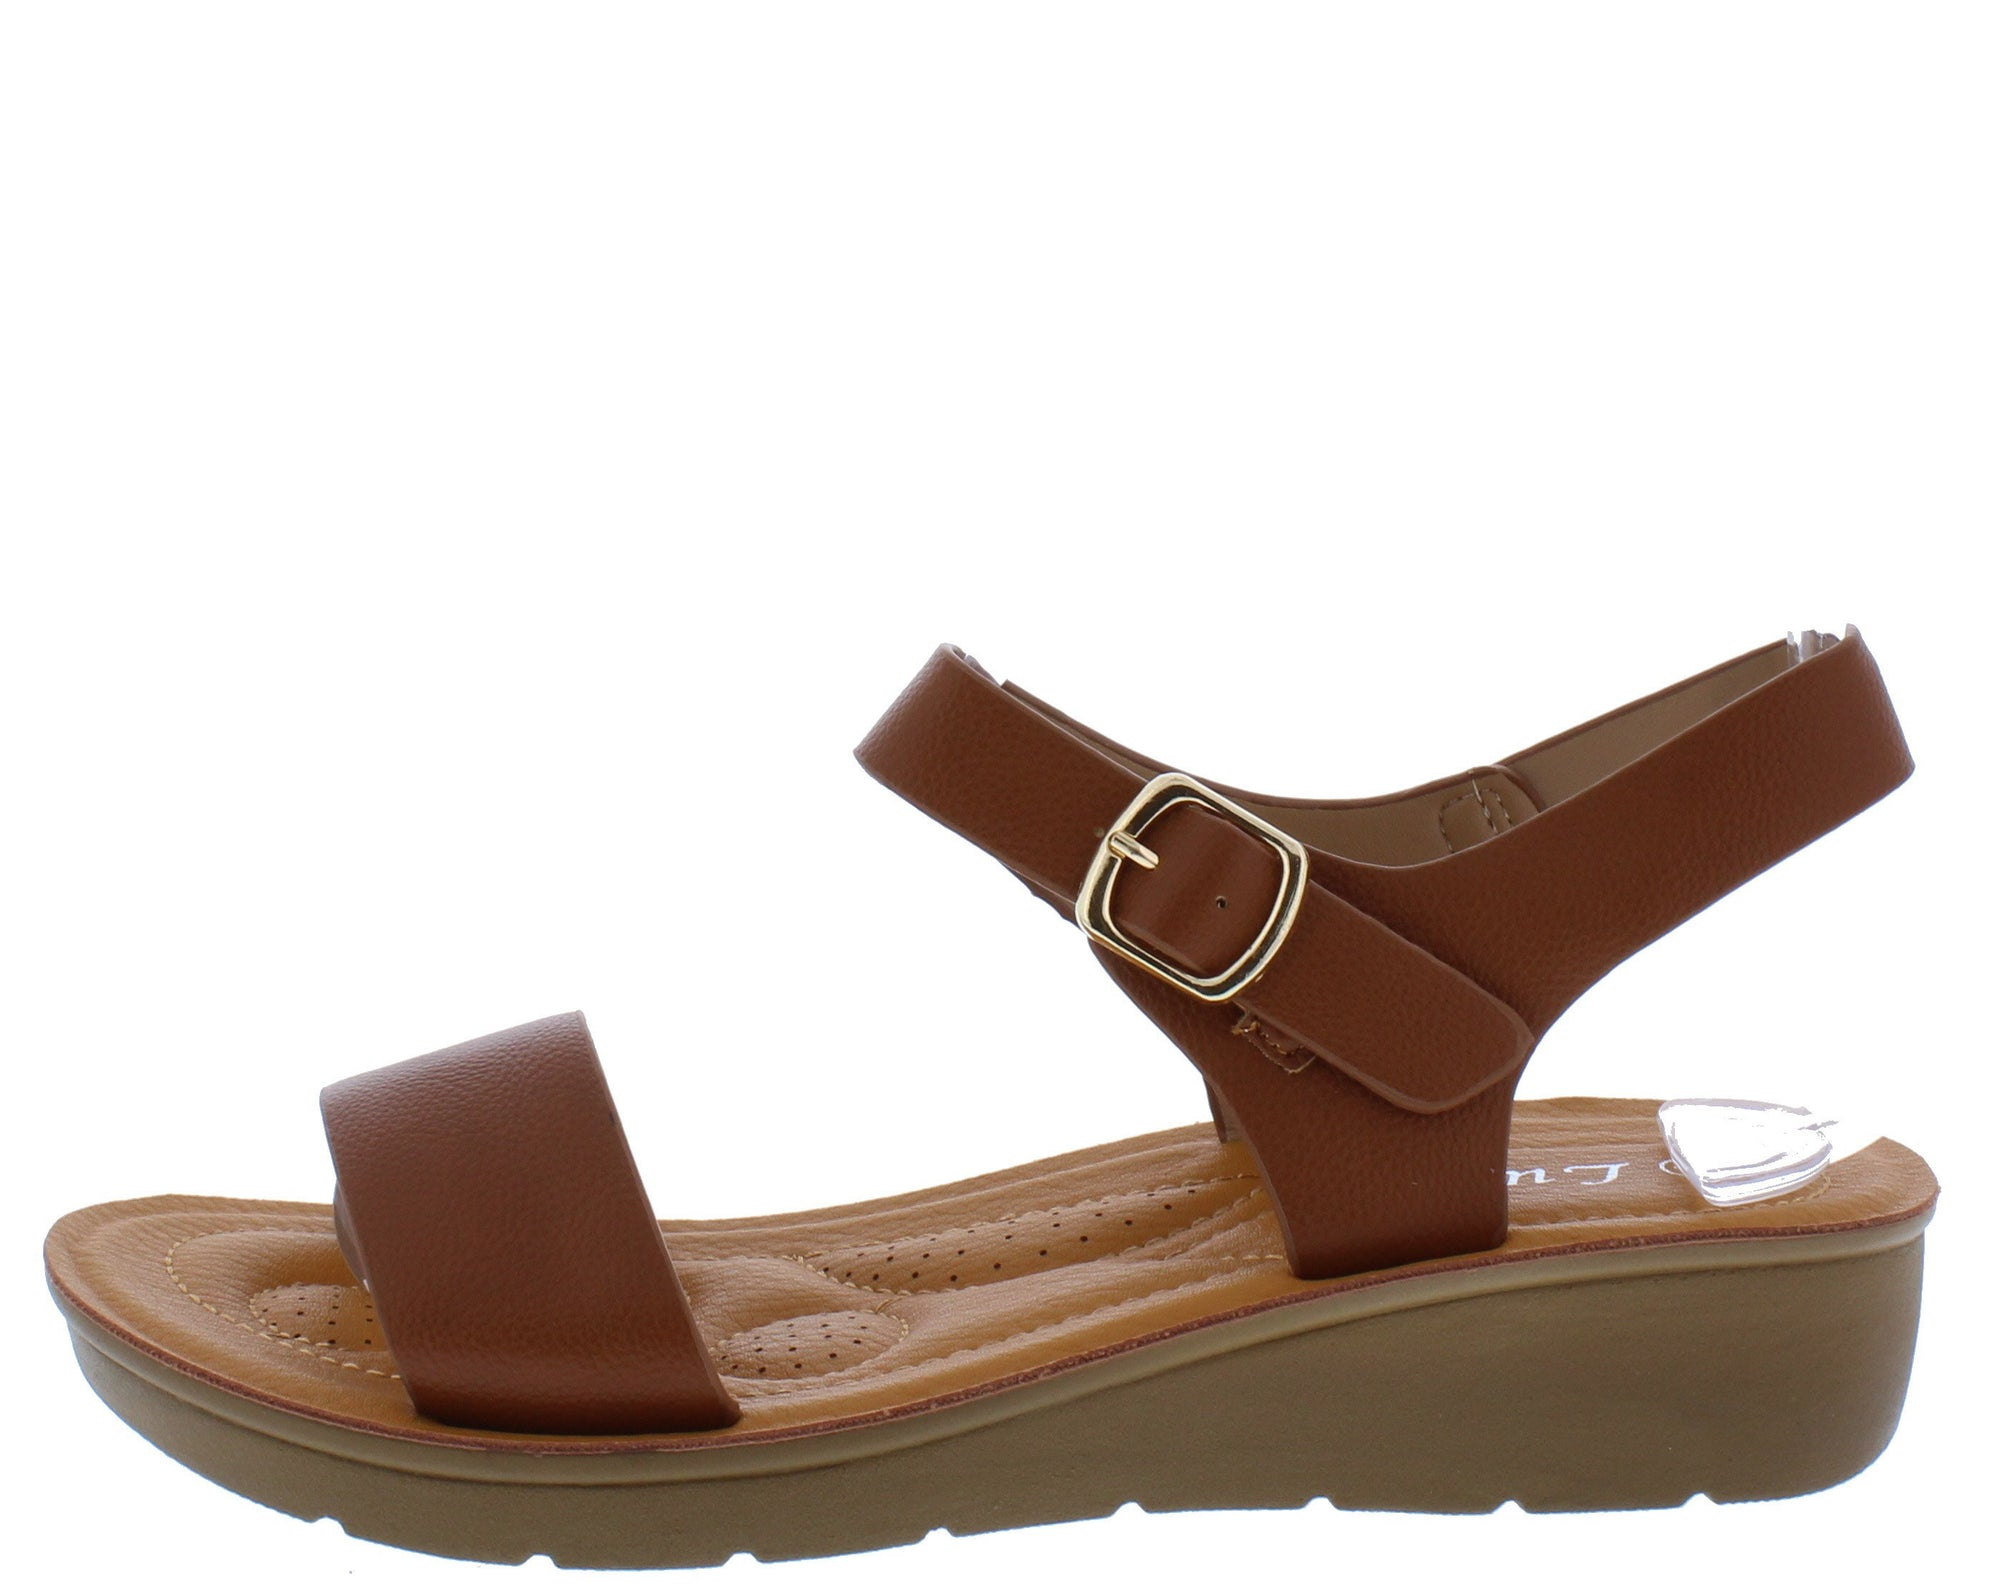 8debdd35f Bella167 Camel Open Toe Ankle Strap Low Wedge Sandal - Wholesale Fashion  Shoes